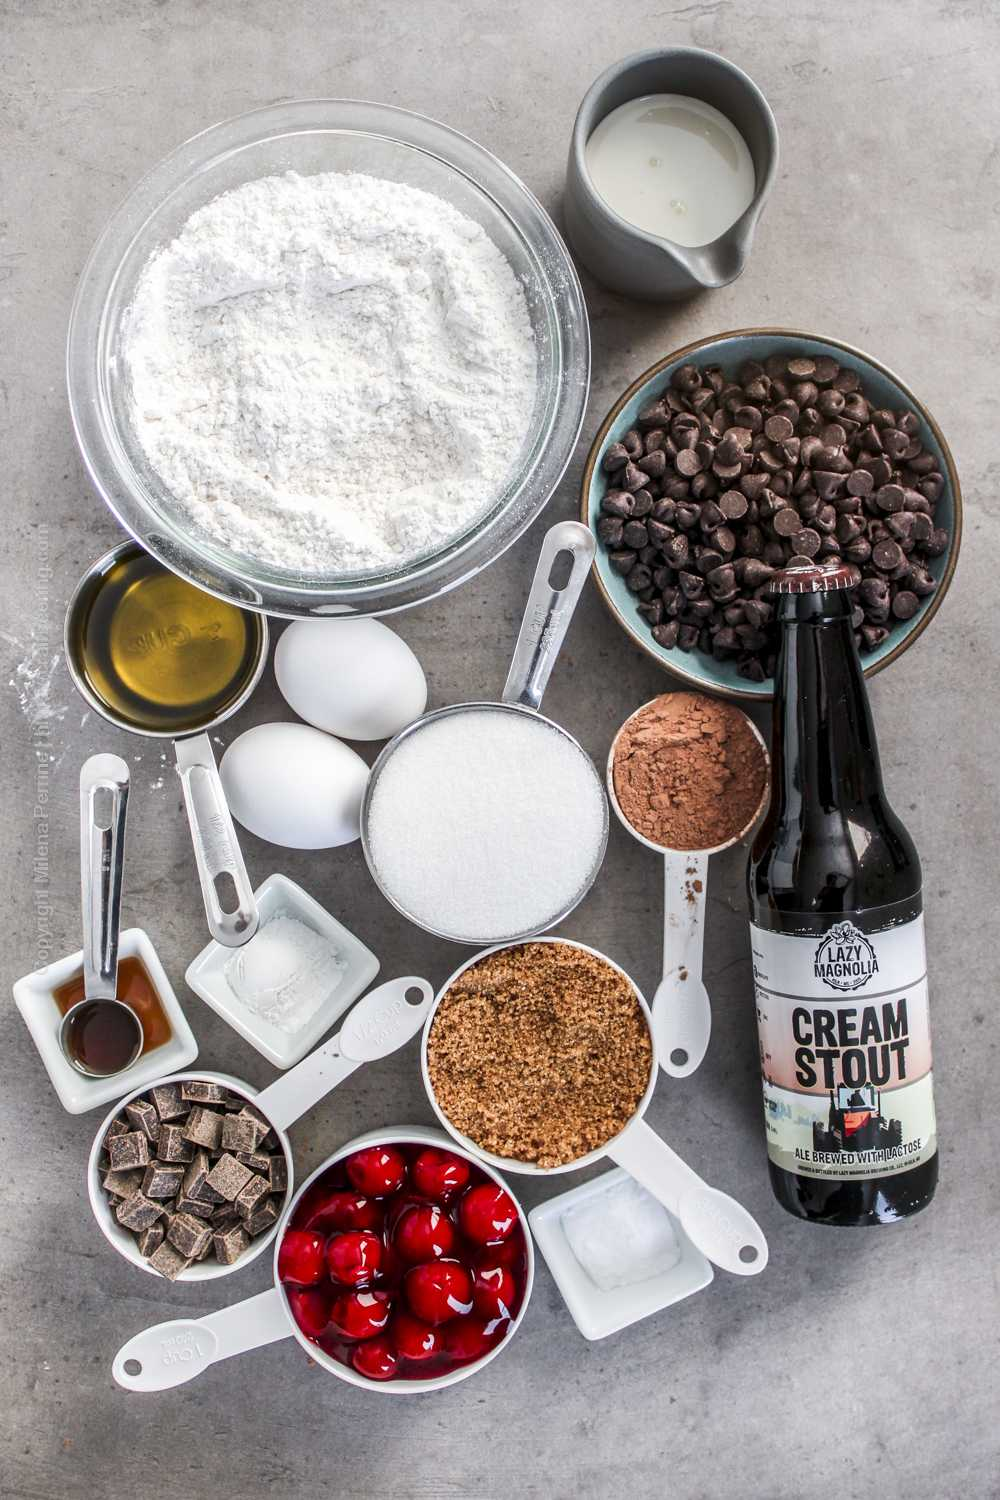 Raw ingredients for chocolate cherry cake - cherry pie filling, cake flour, olive oil, dark chocolate chips, cocoa powder, sugar, eggs. etc.